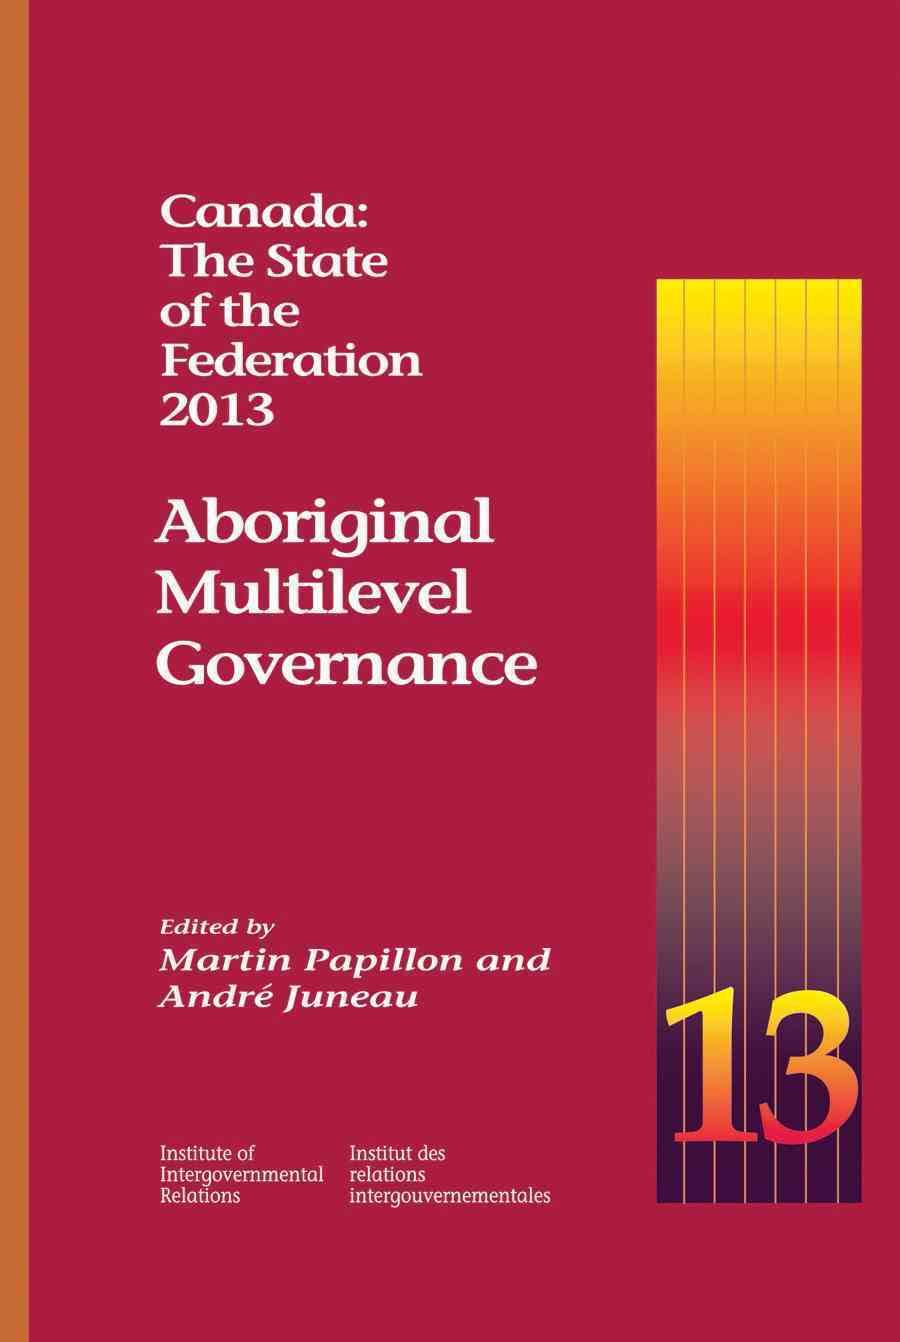 eBook - Canada: The State of the Federation, 2013